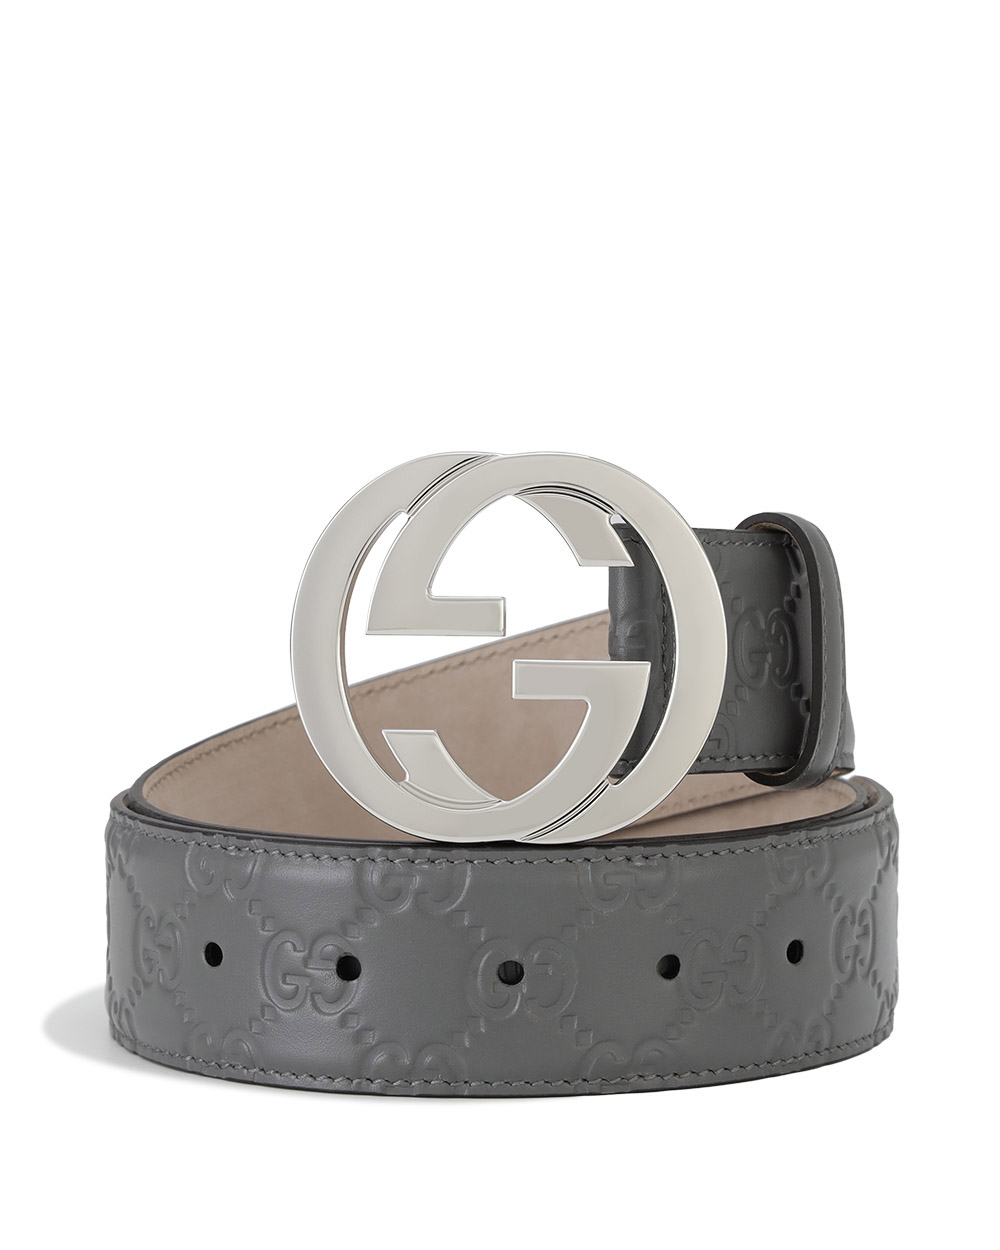 GG Signature Leather Belt